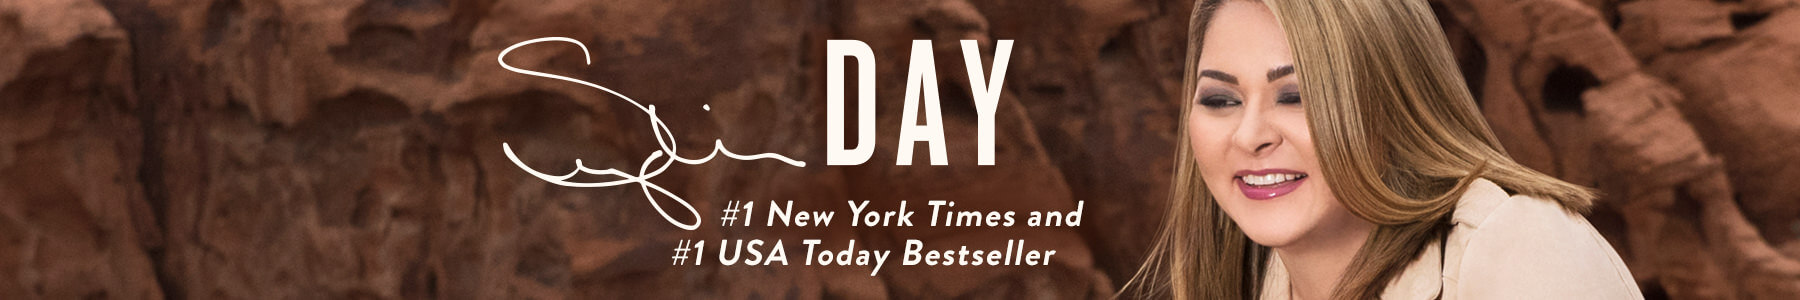 One with you bookshelf best selling books by 1 new york times sylvia day fandeluxe Image collections